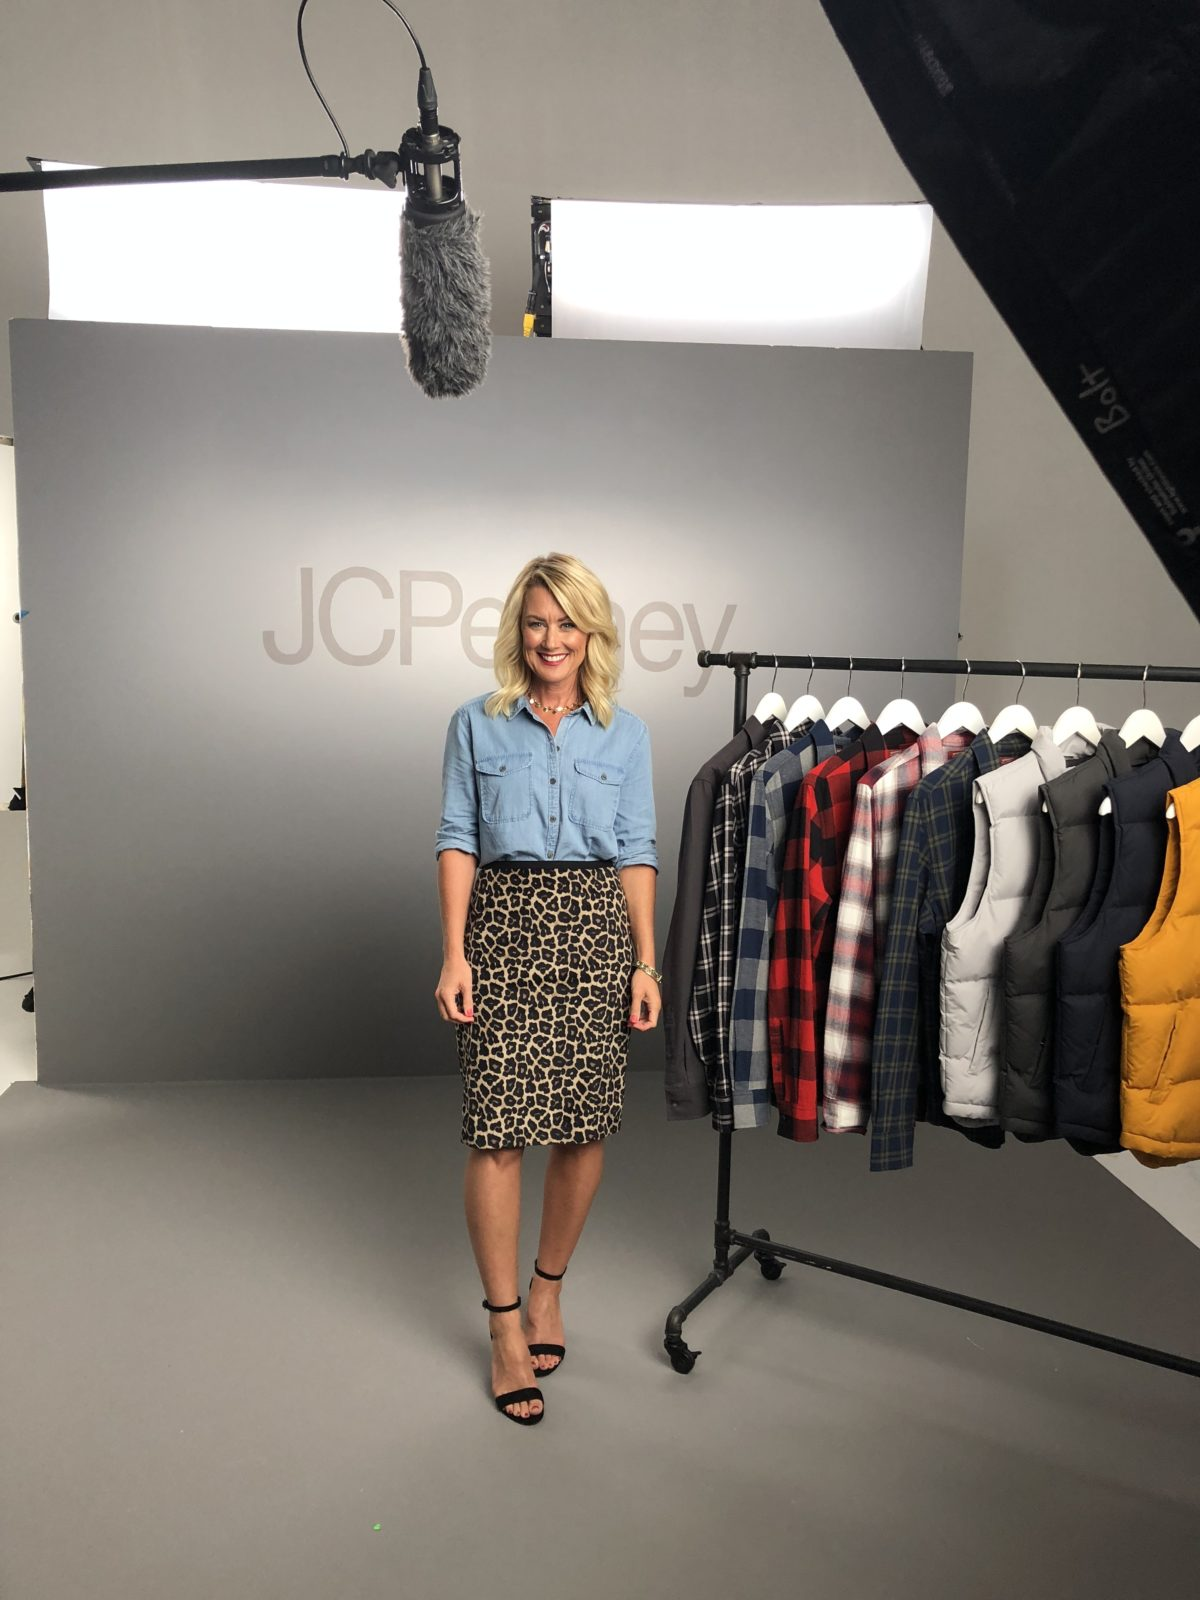 jcpenney video shoot